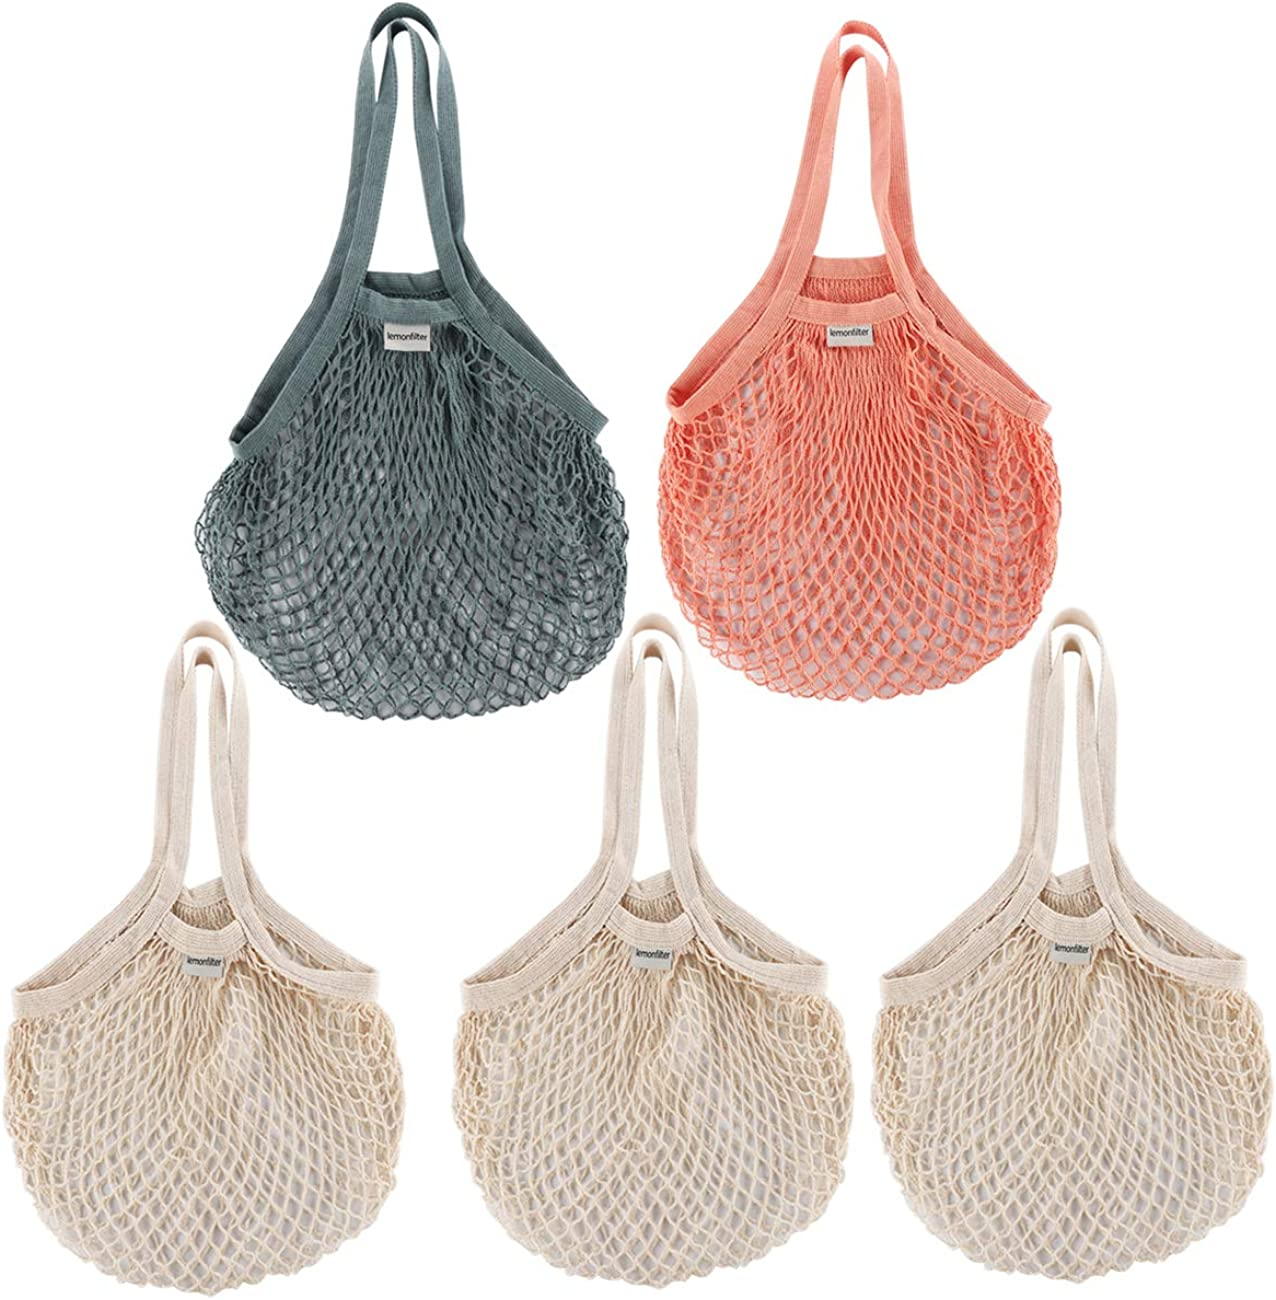 Lemonfilter 5 Pack Reusable Cotton Mesh Grocery Bags, Foldable and Washable Cotton String Shopping Bags Long Handle Net Tote for Farmers Market Shopping (3 color)